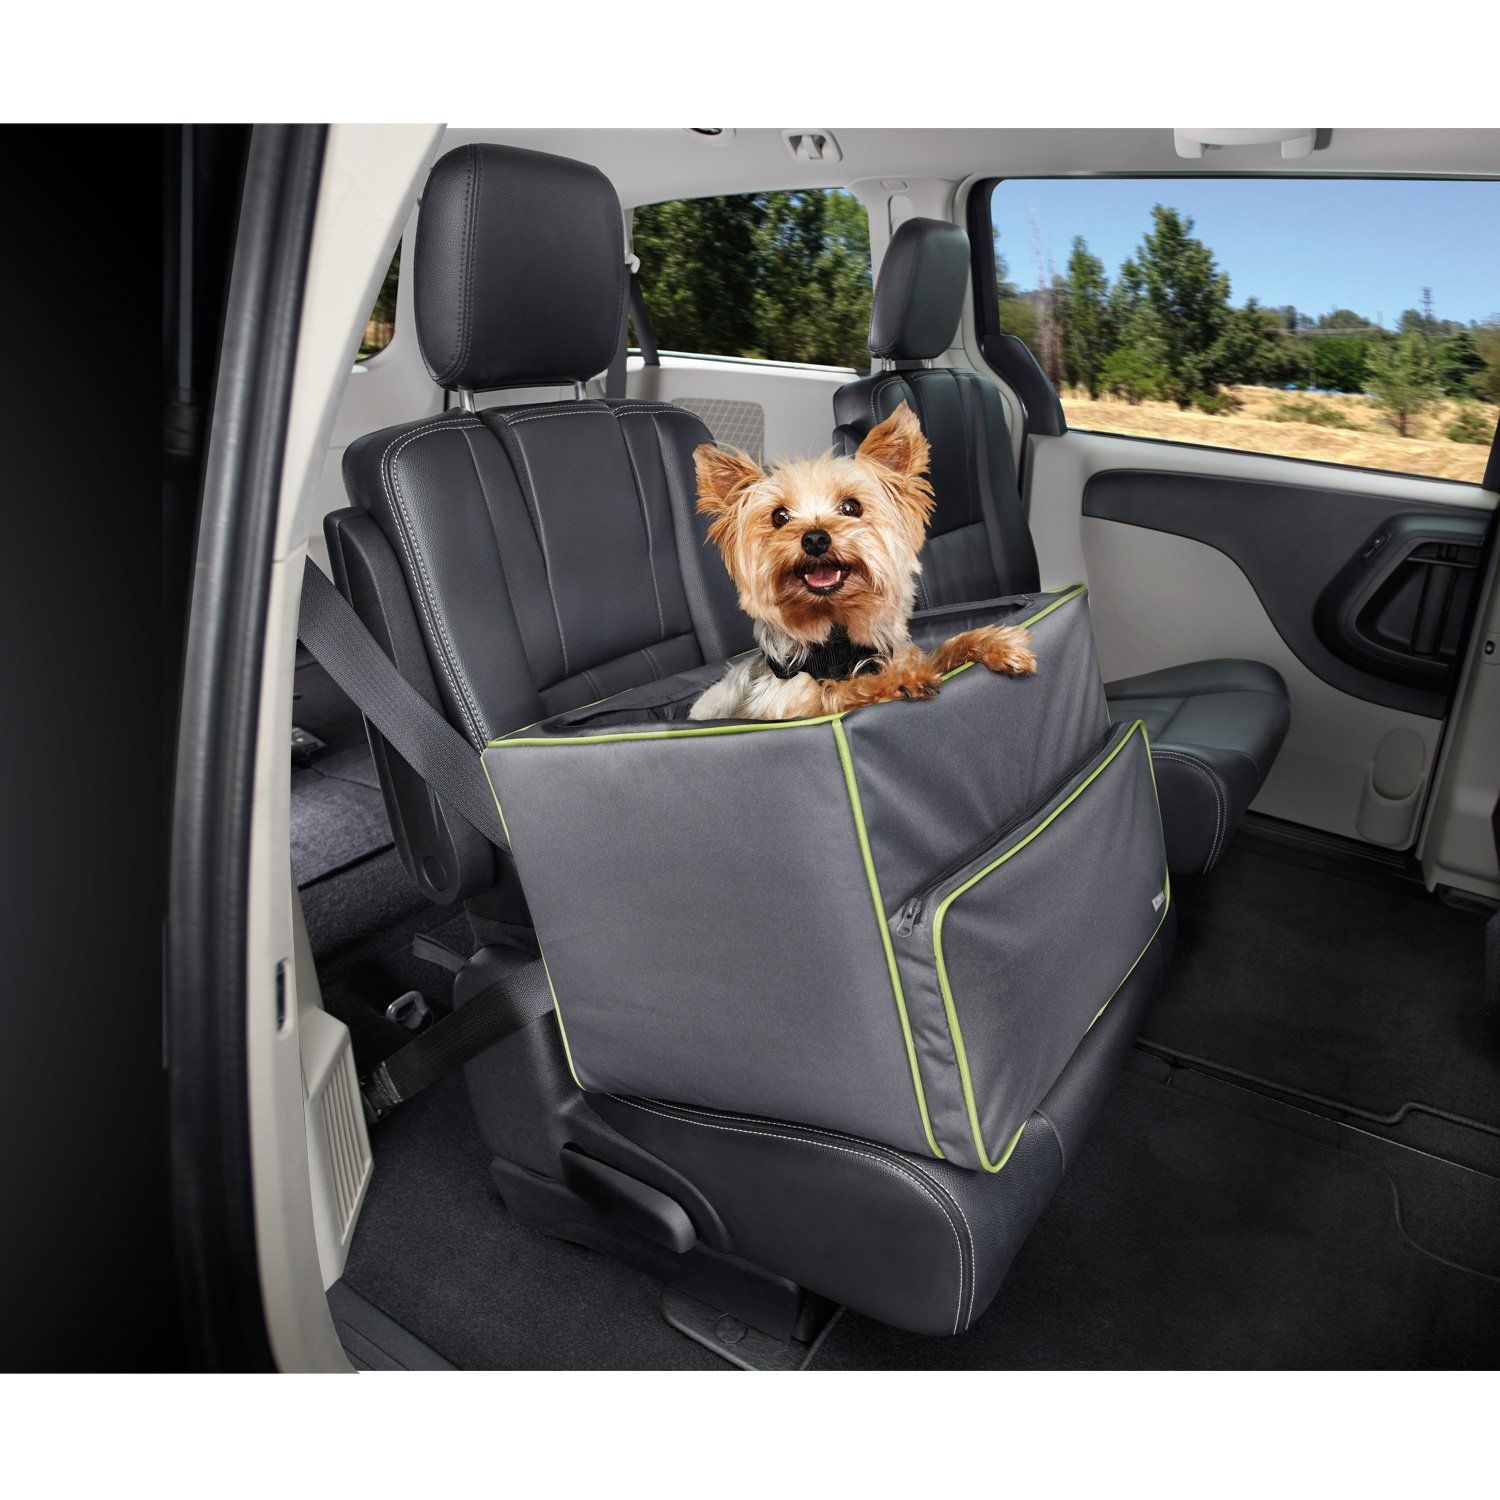 Good2go Booster Dog Car Seat Petco Store Dog Car Seats Dog